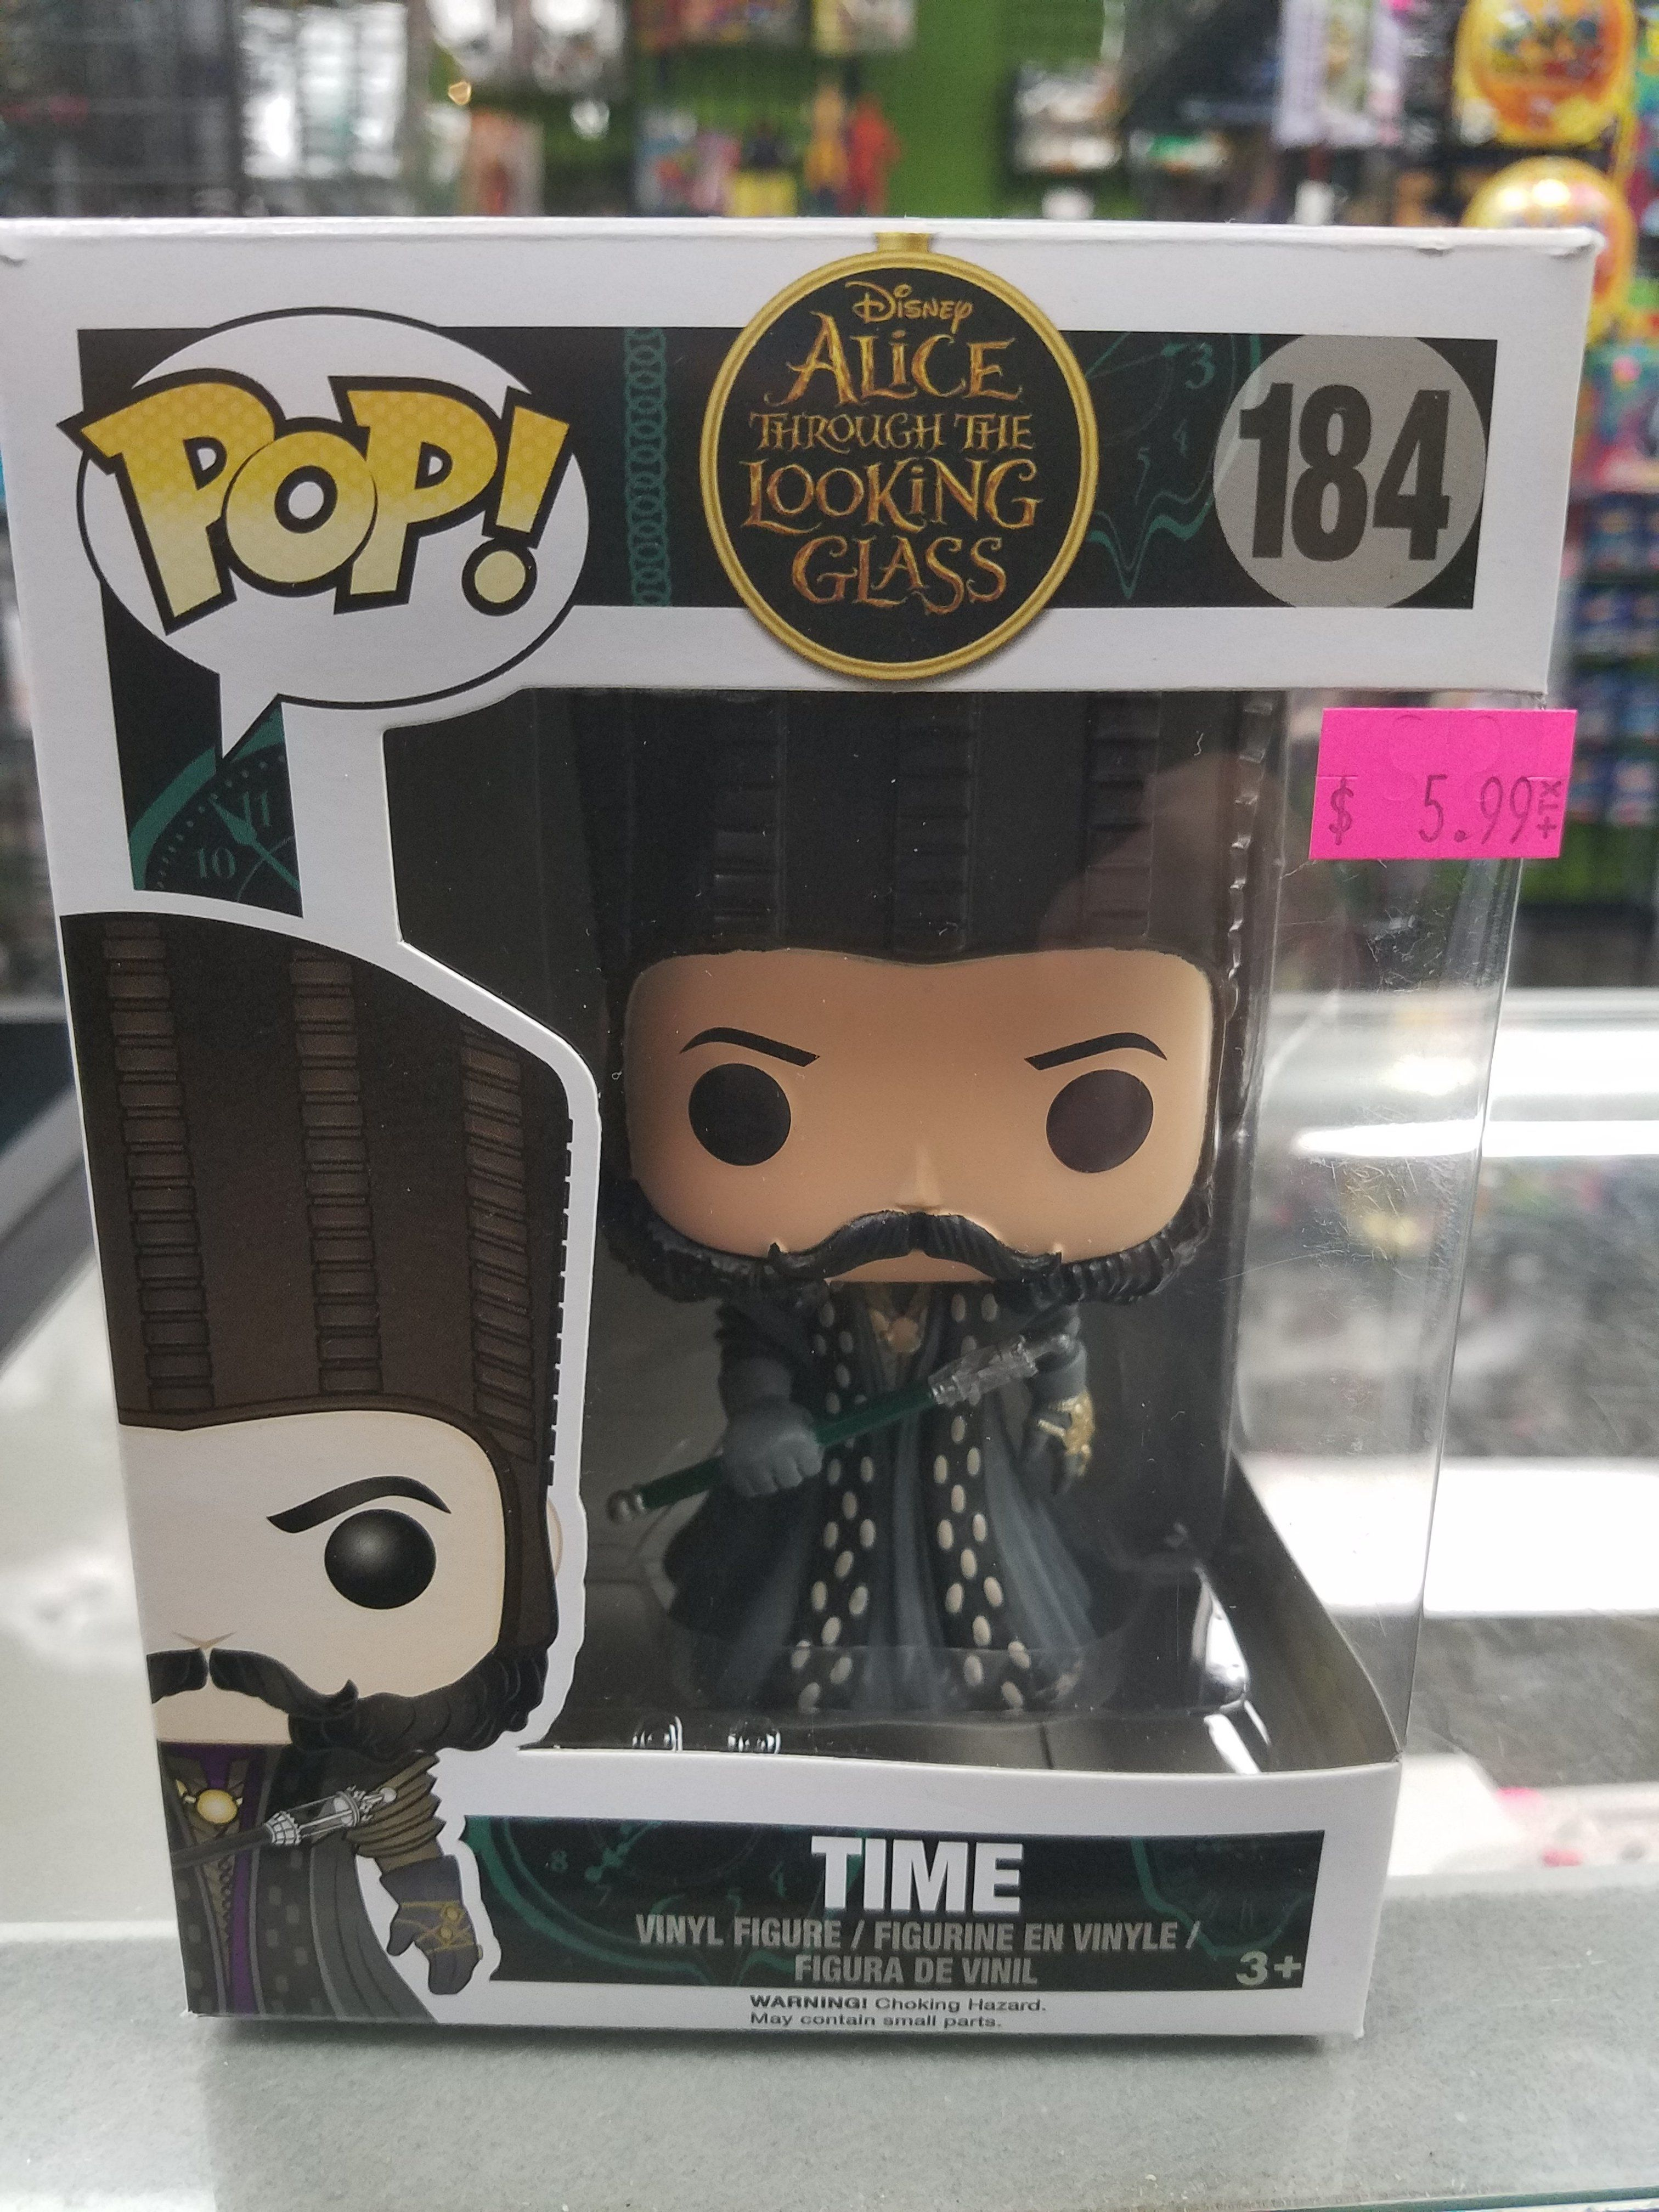 d0216a86f27 PoP! Disney Alice Through the Looking Glass Time 184